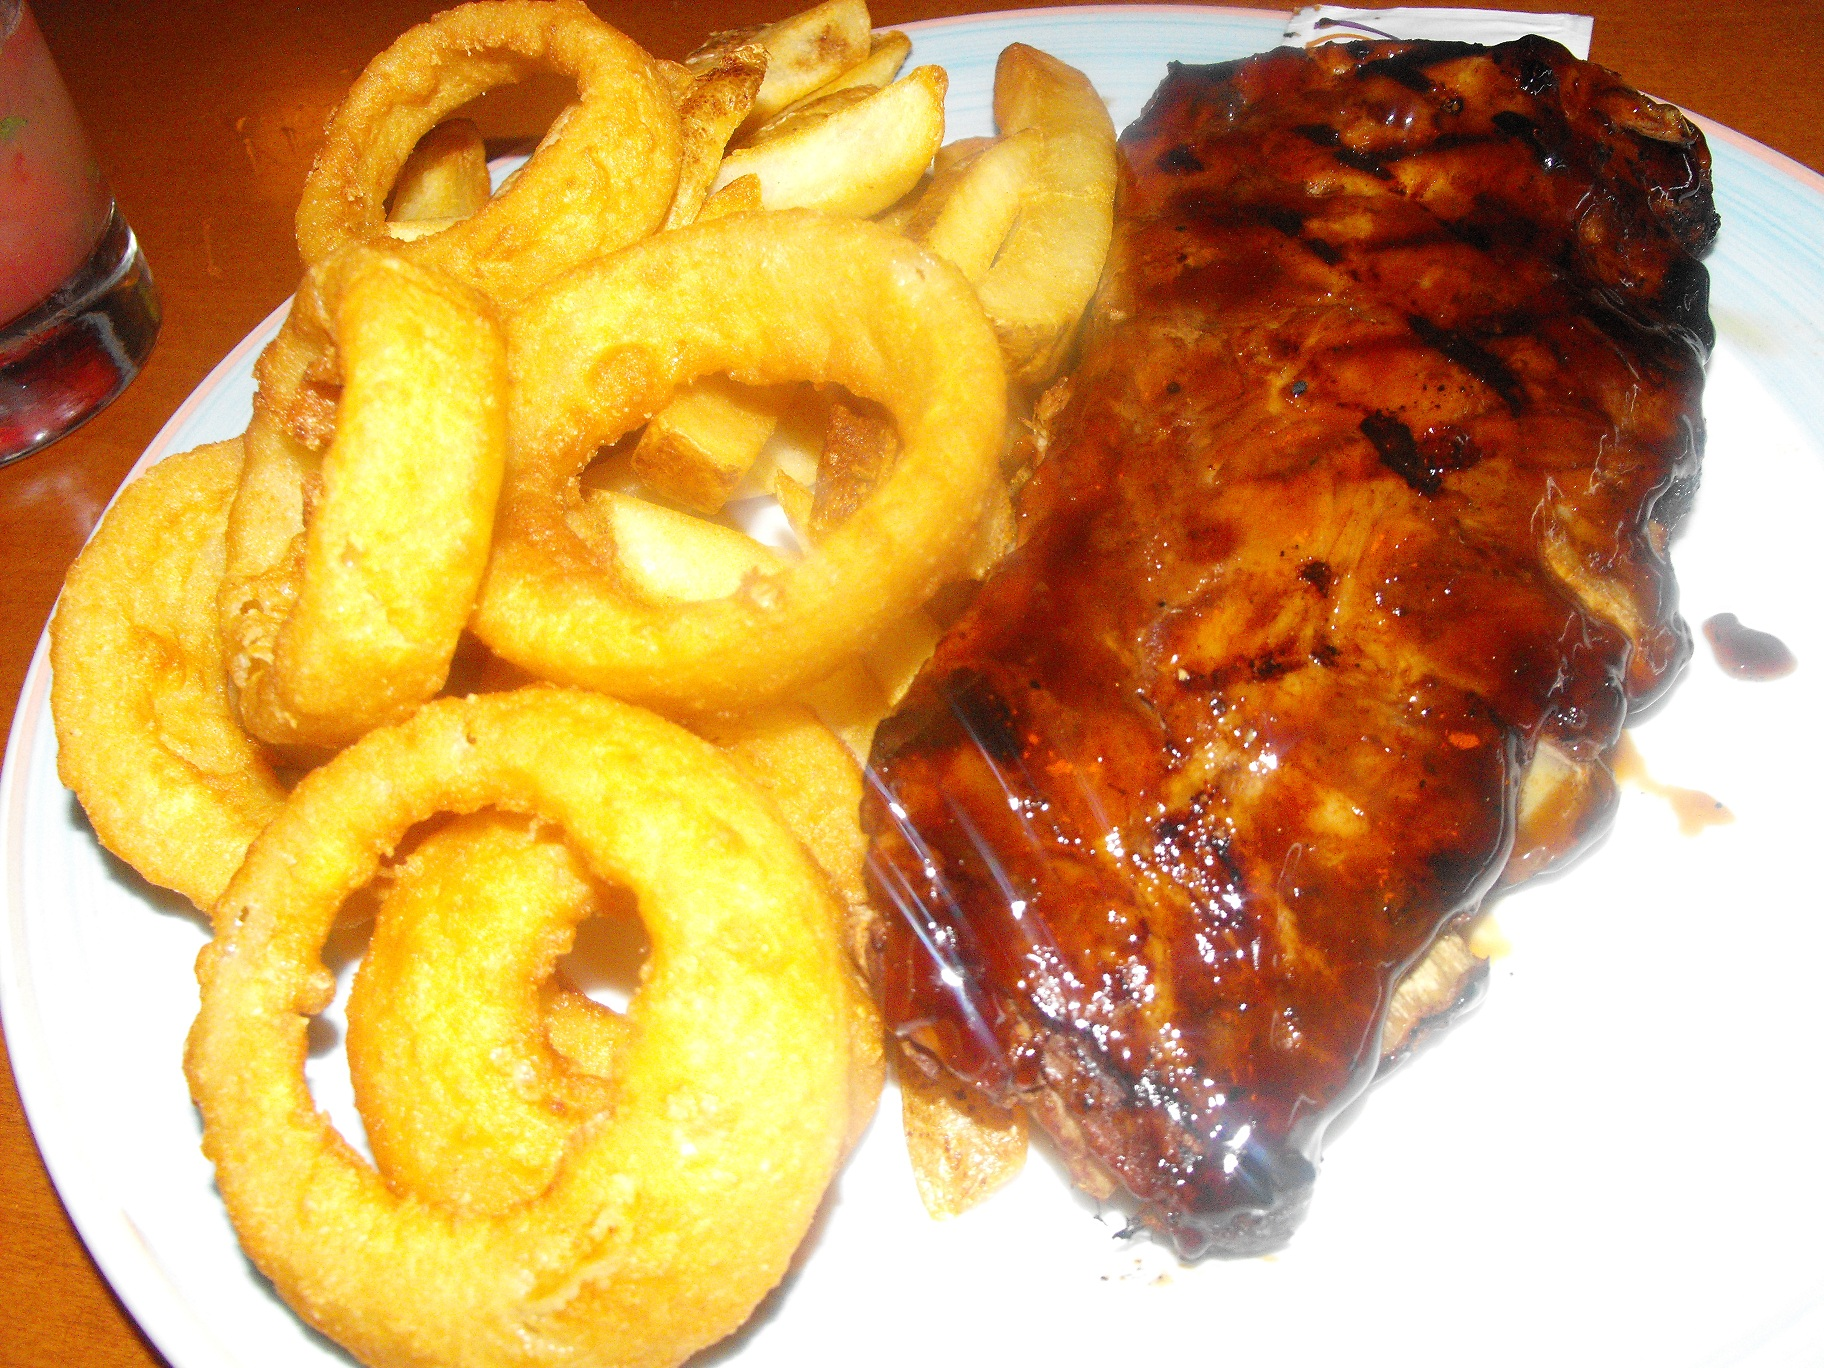 http://foodloader.net/cutie_2011-08-18_Baby_Back_Ribs_with_Onion_Rings.jpg